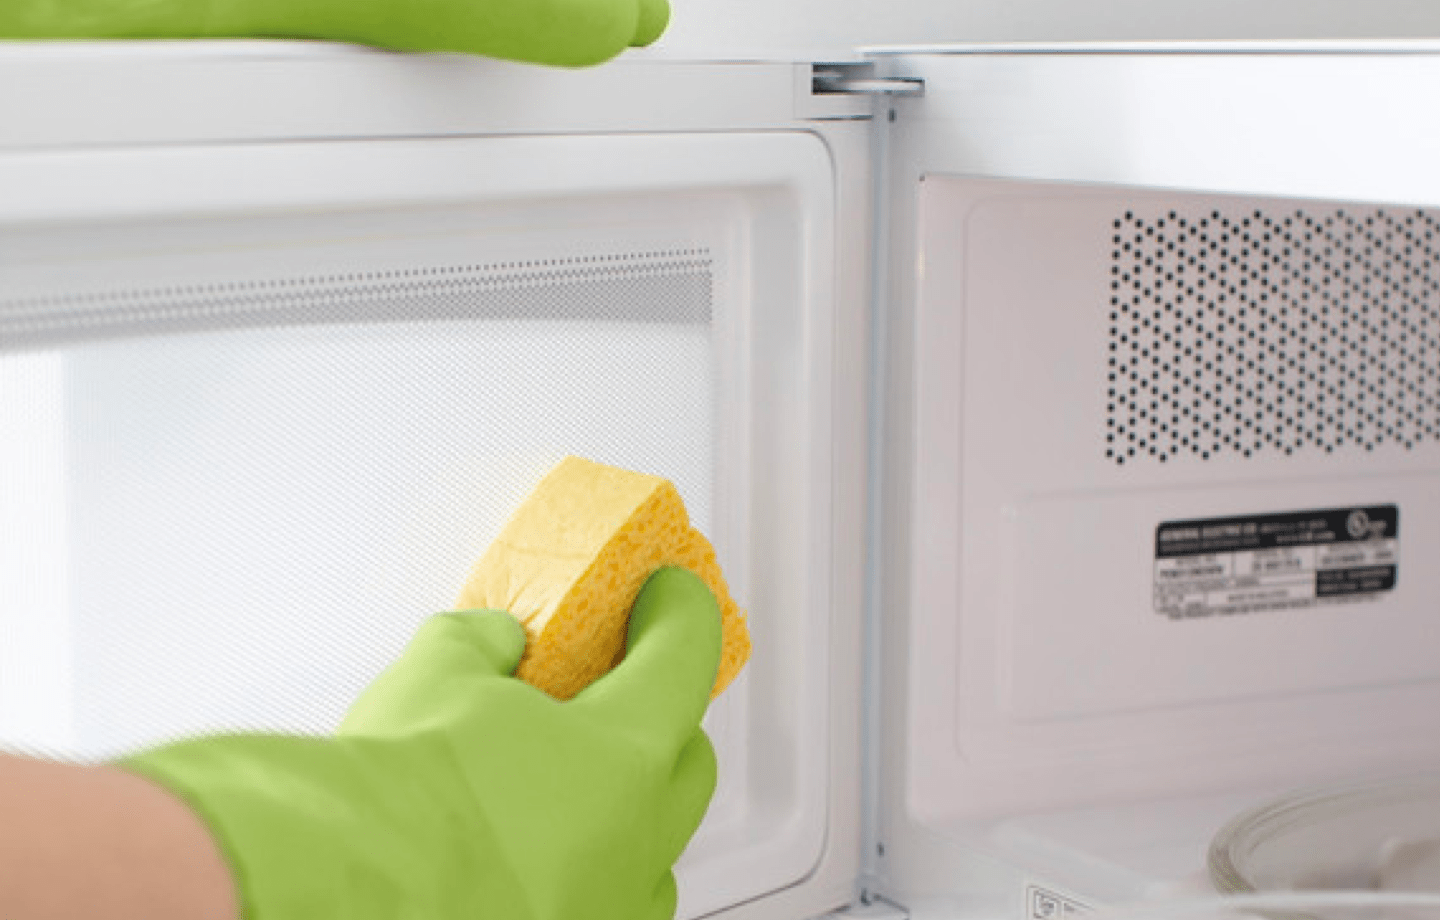 cleaning microwave DIY kitchen hacks and tips